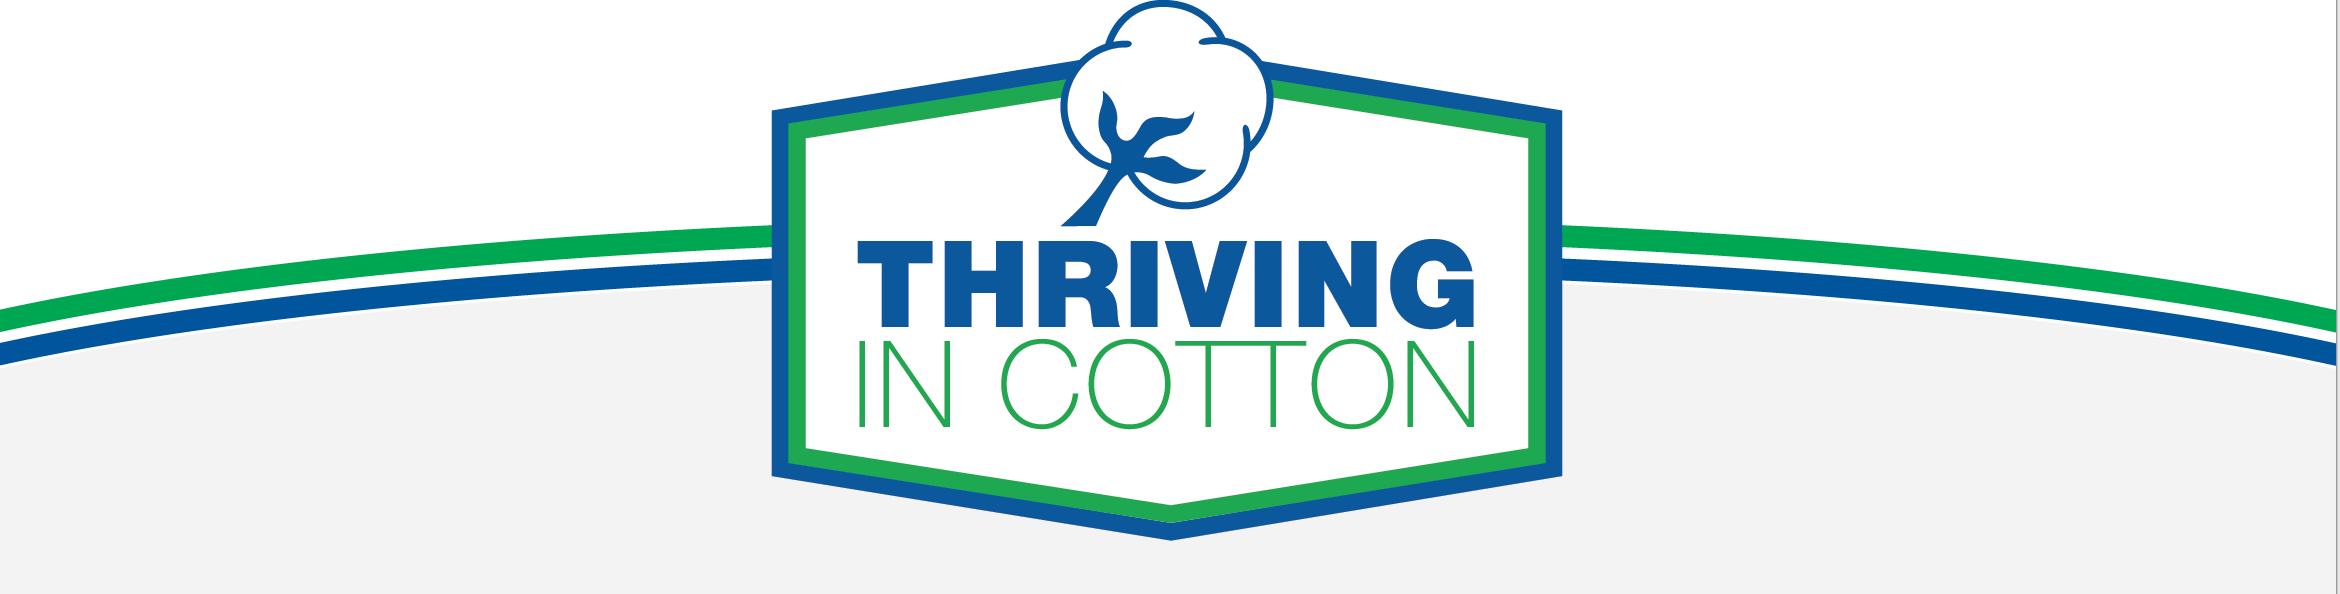 Thriving In Cotton header